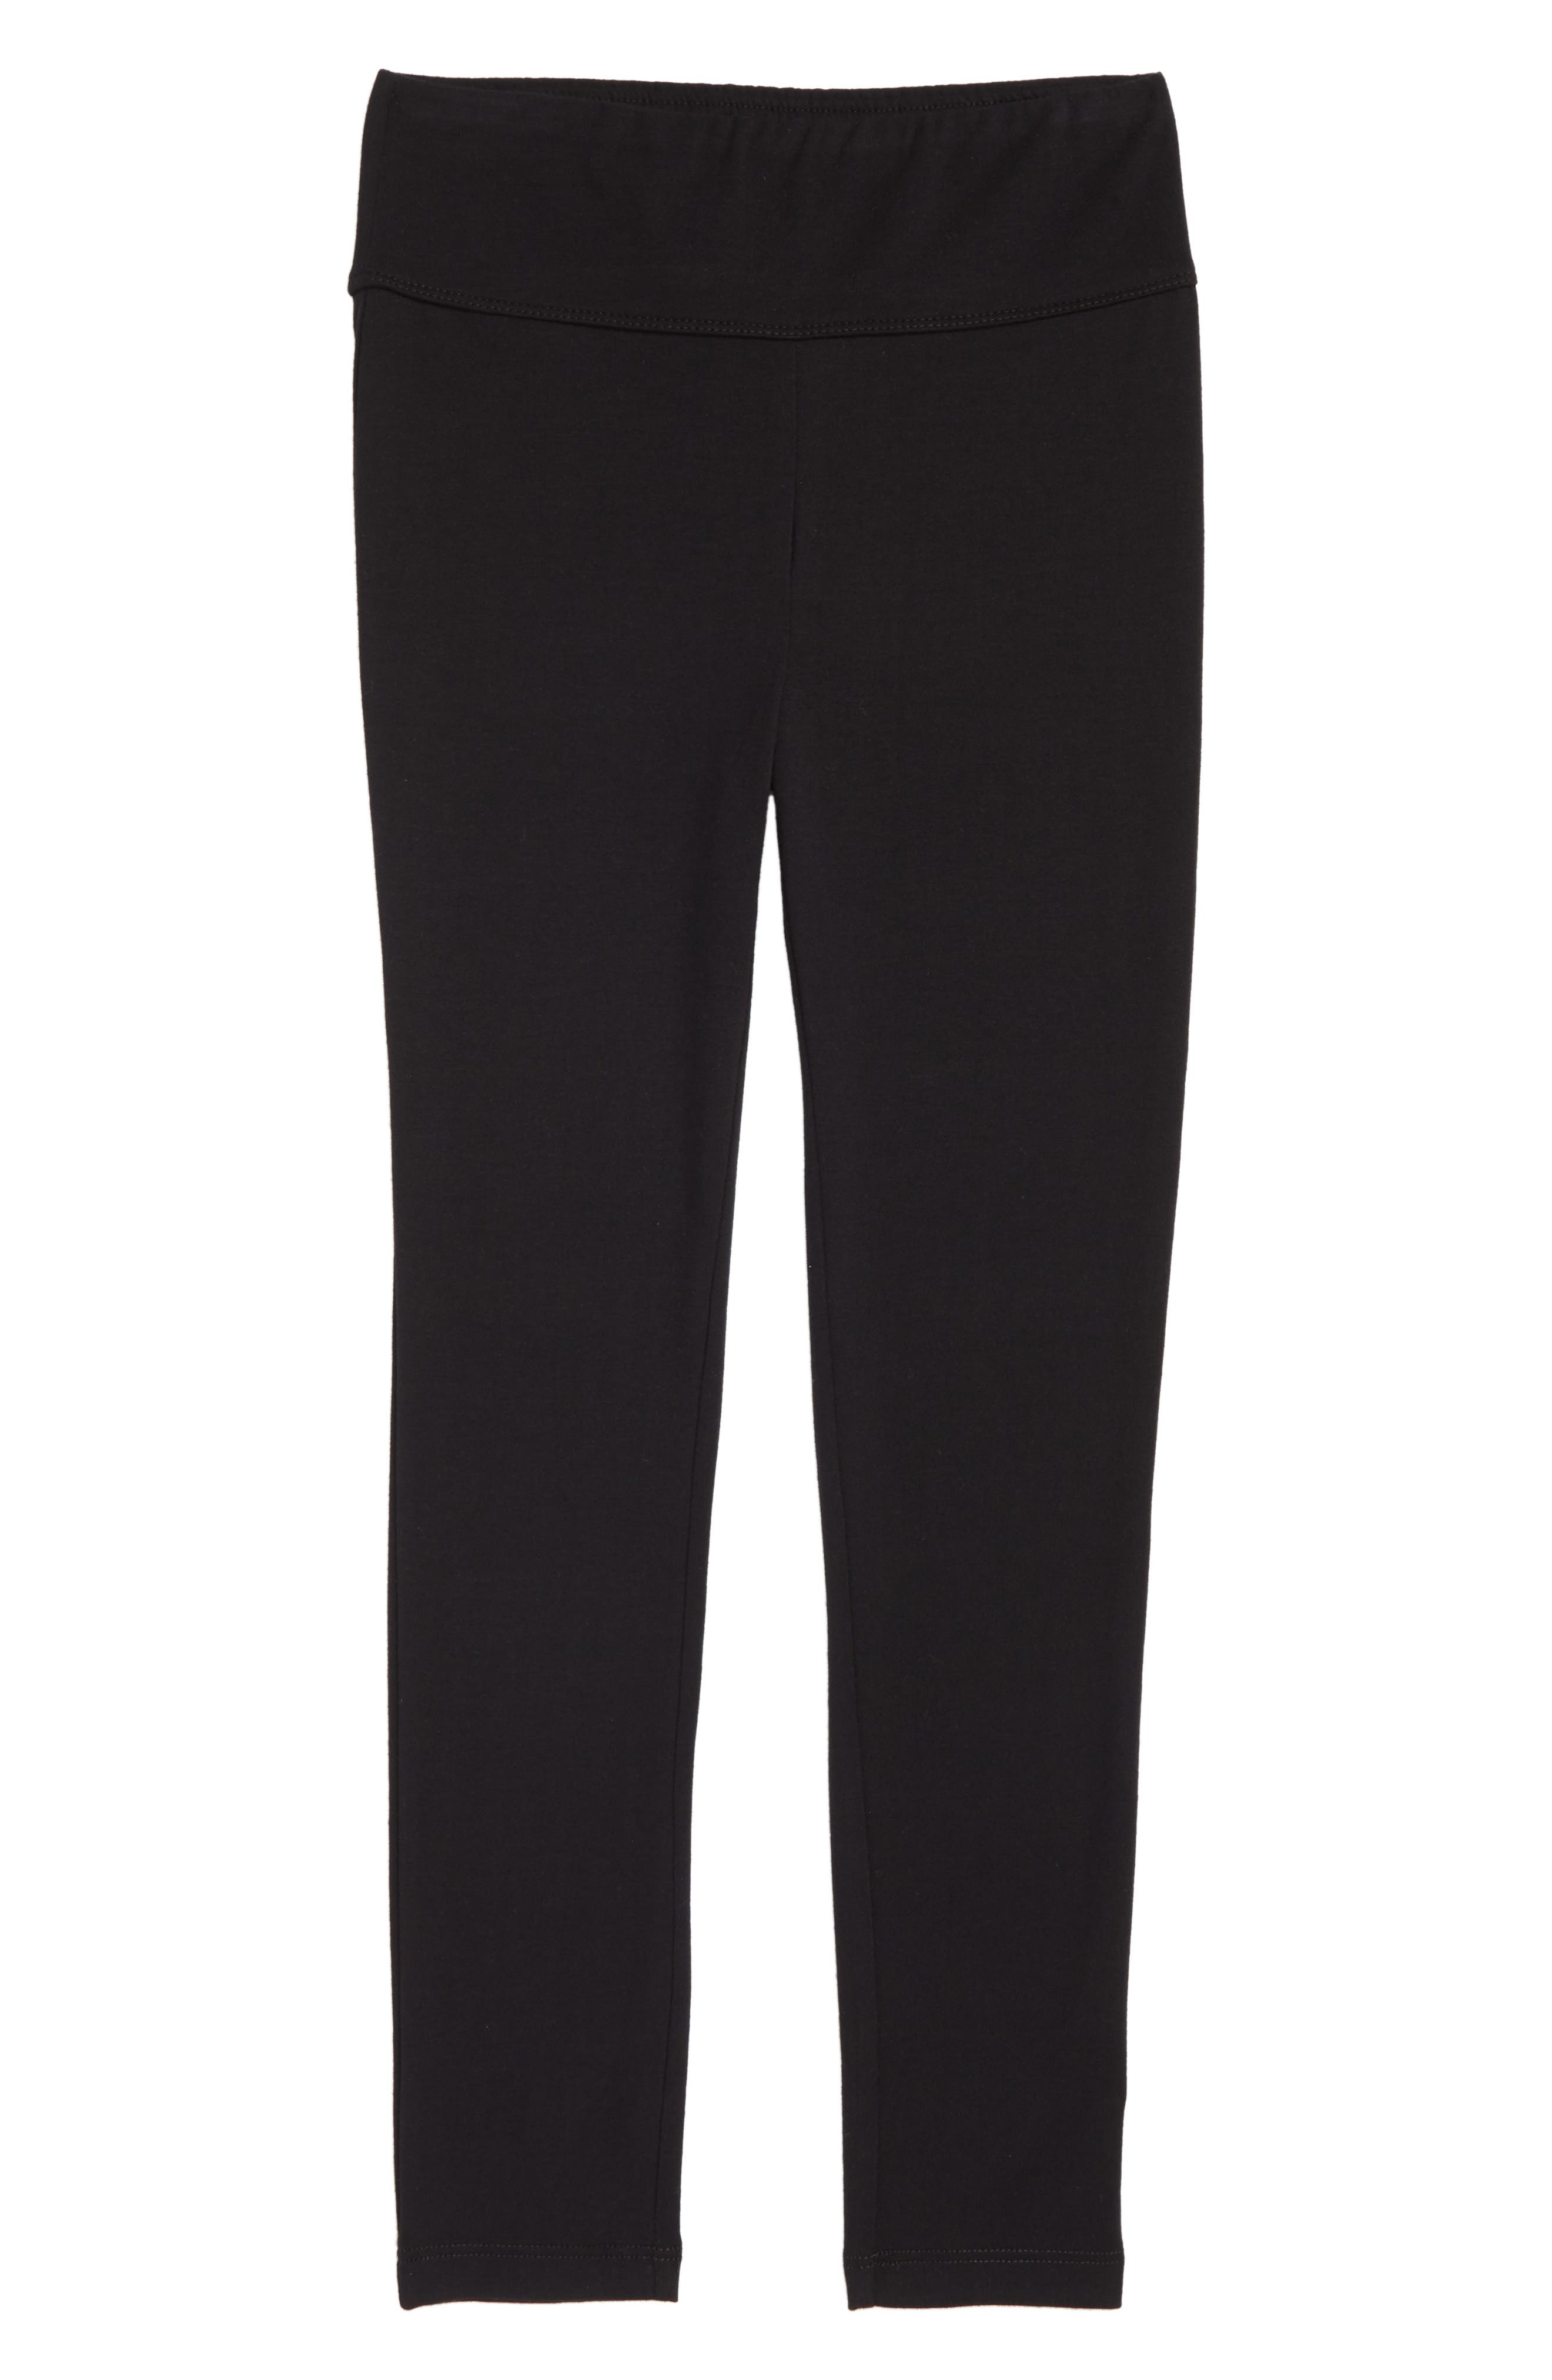 High Waist Leggings,                             Main thumbnail 1, color,                             BLACK